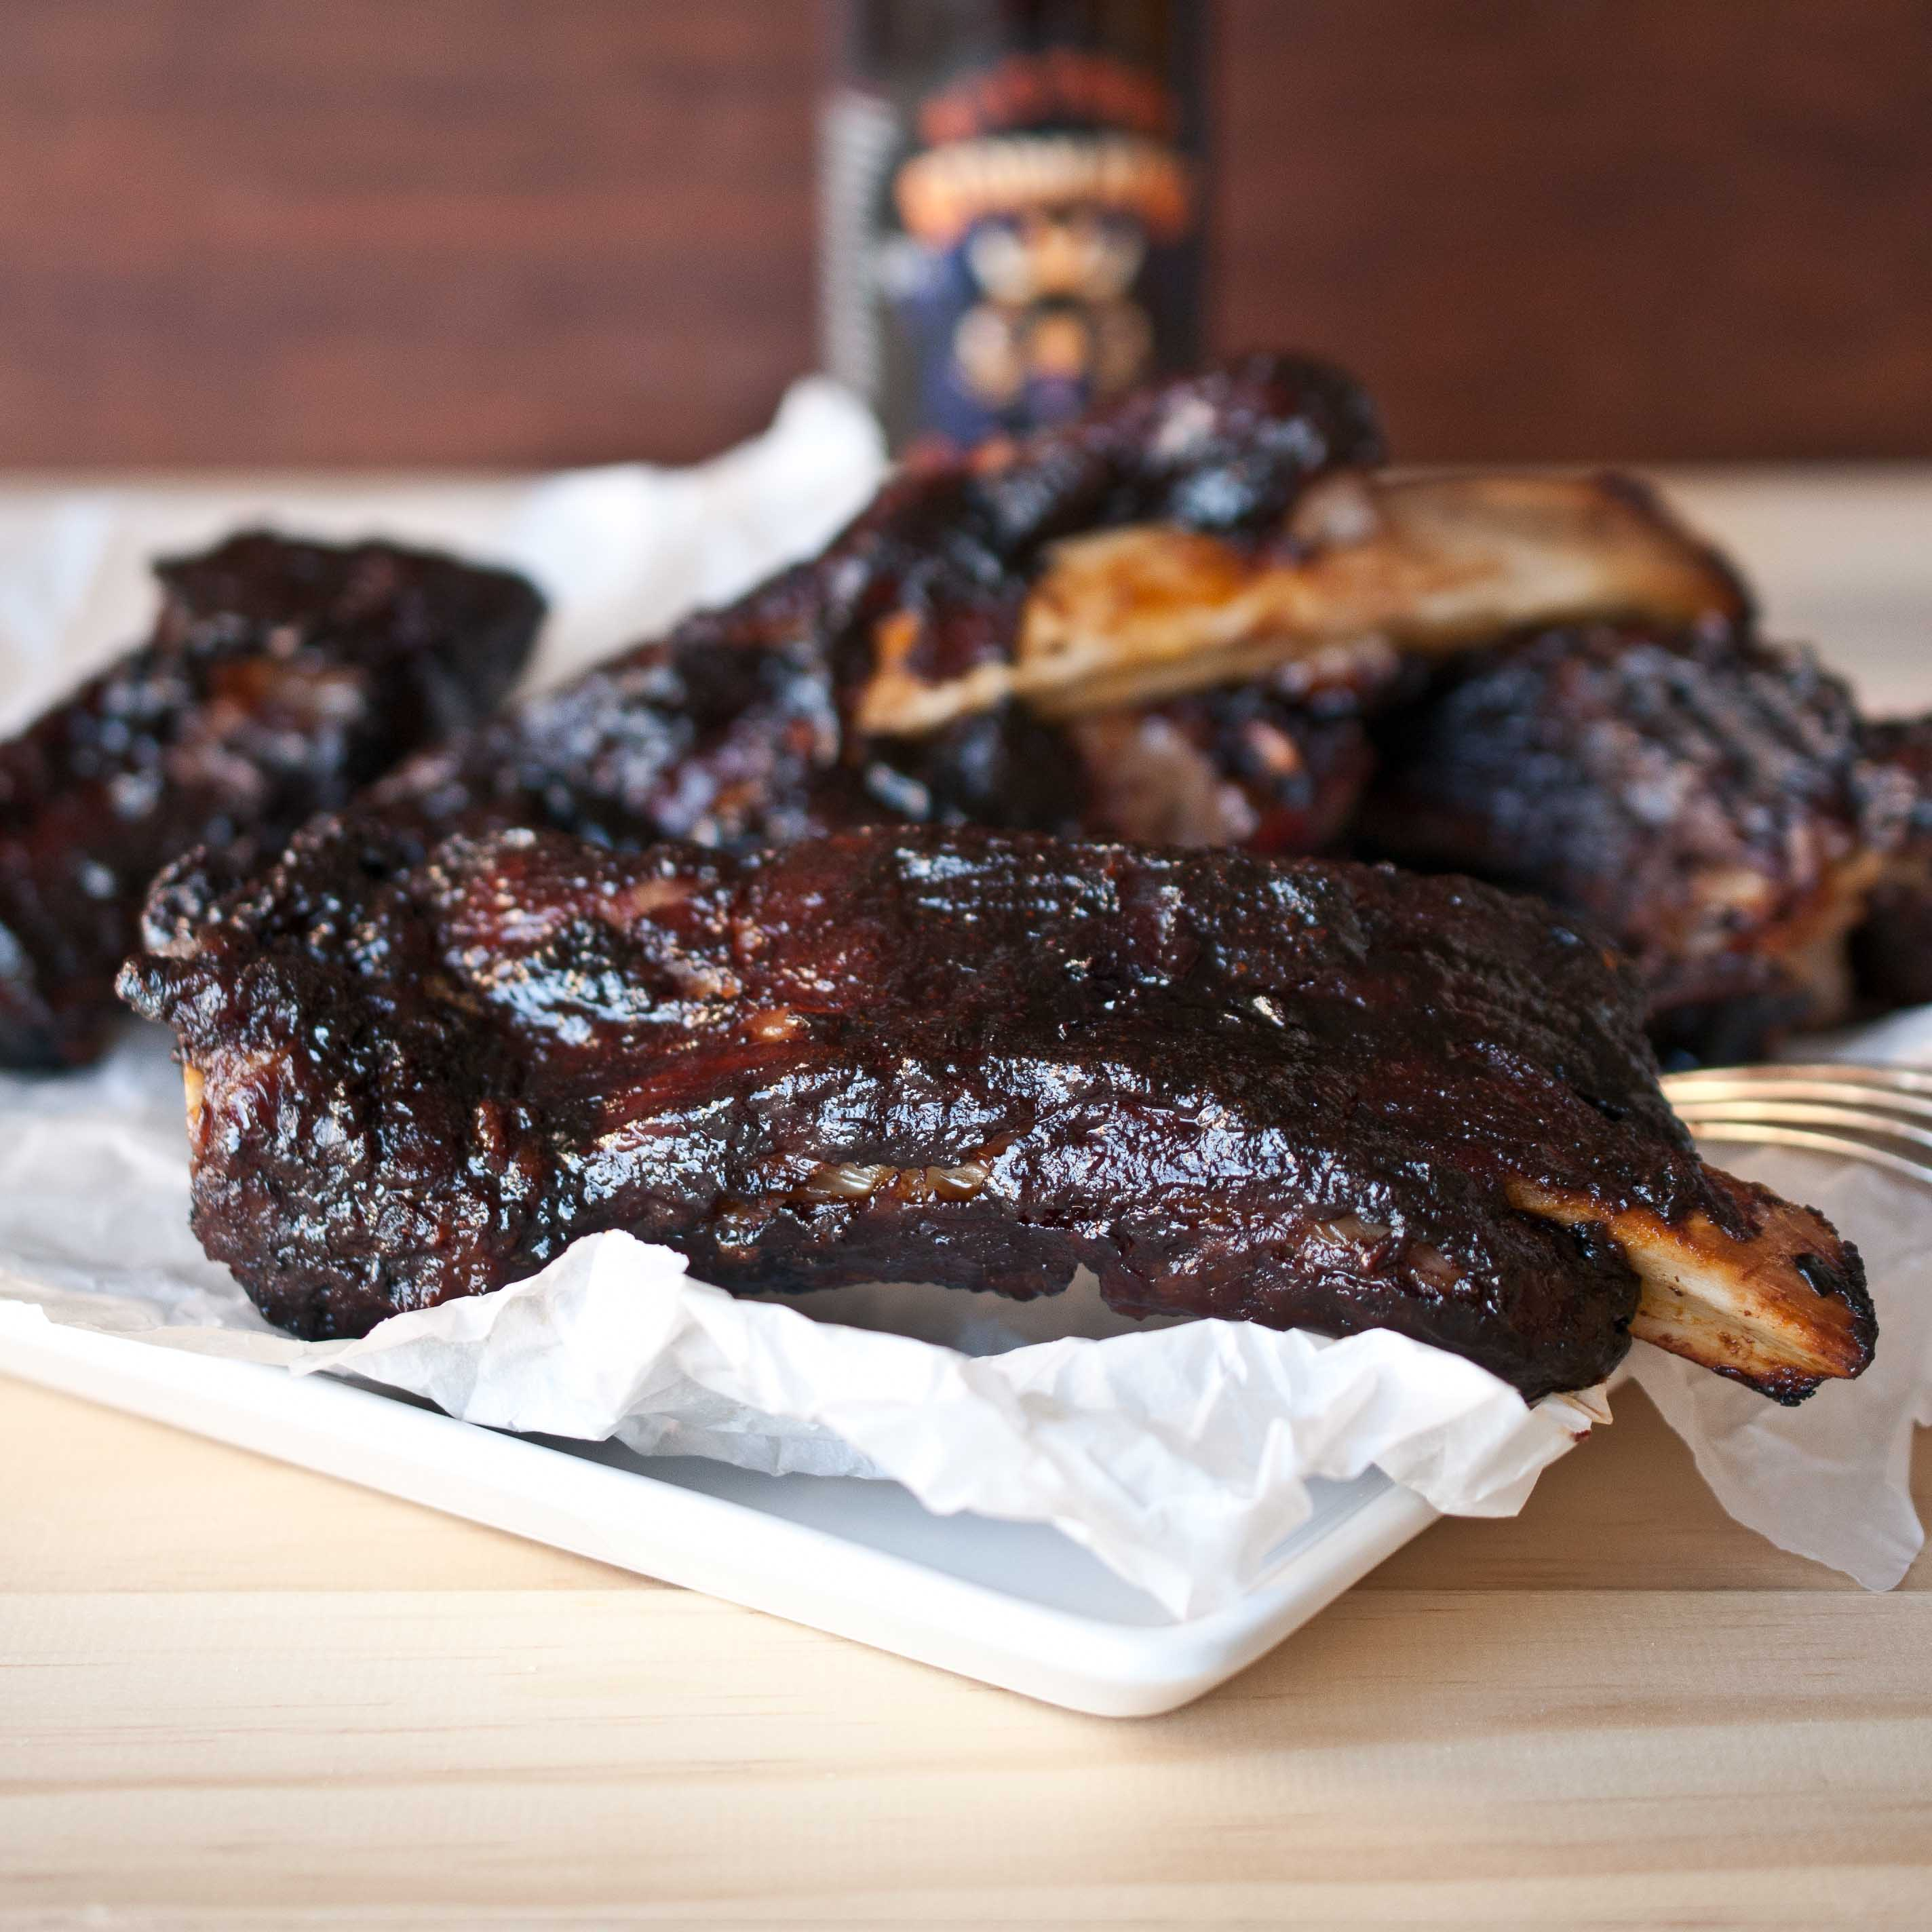 Oven Roasted BBQ Ribs With Stout Barbecue Sauce - The Beeroness